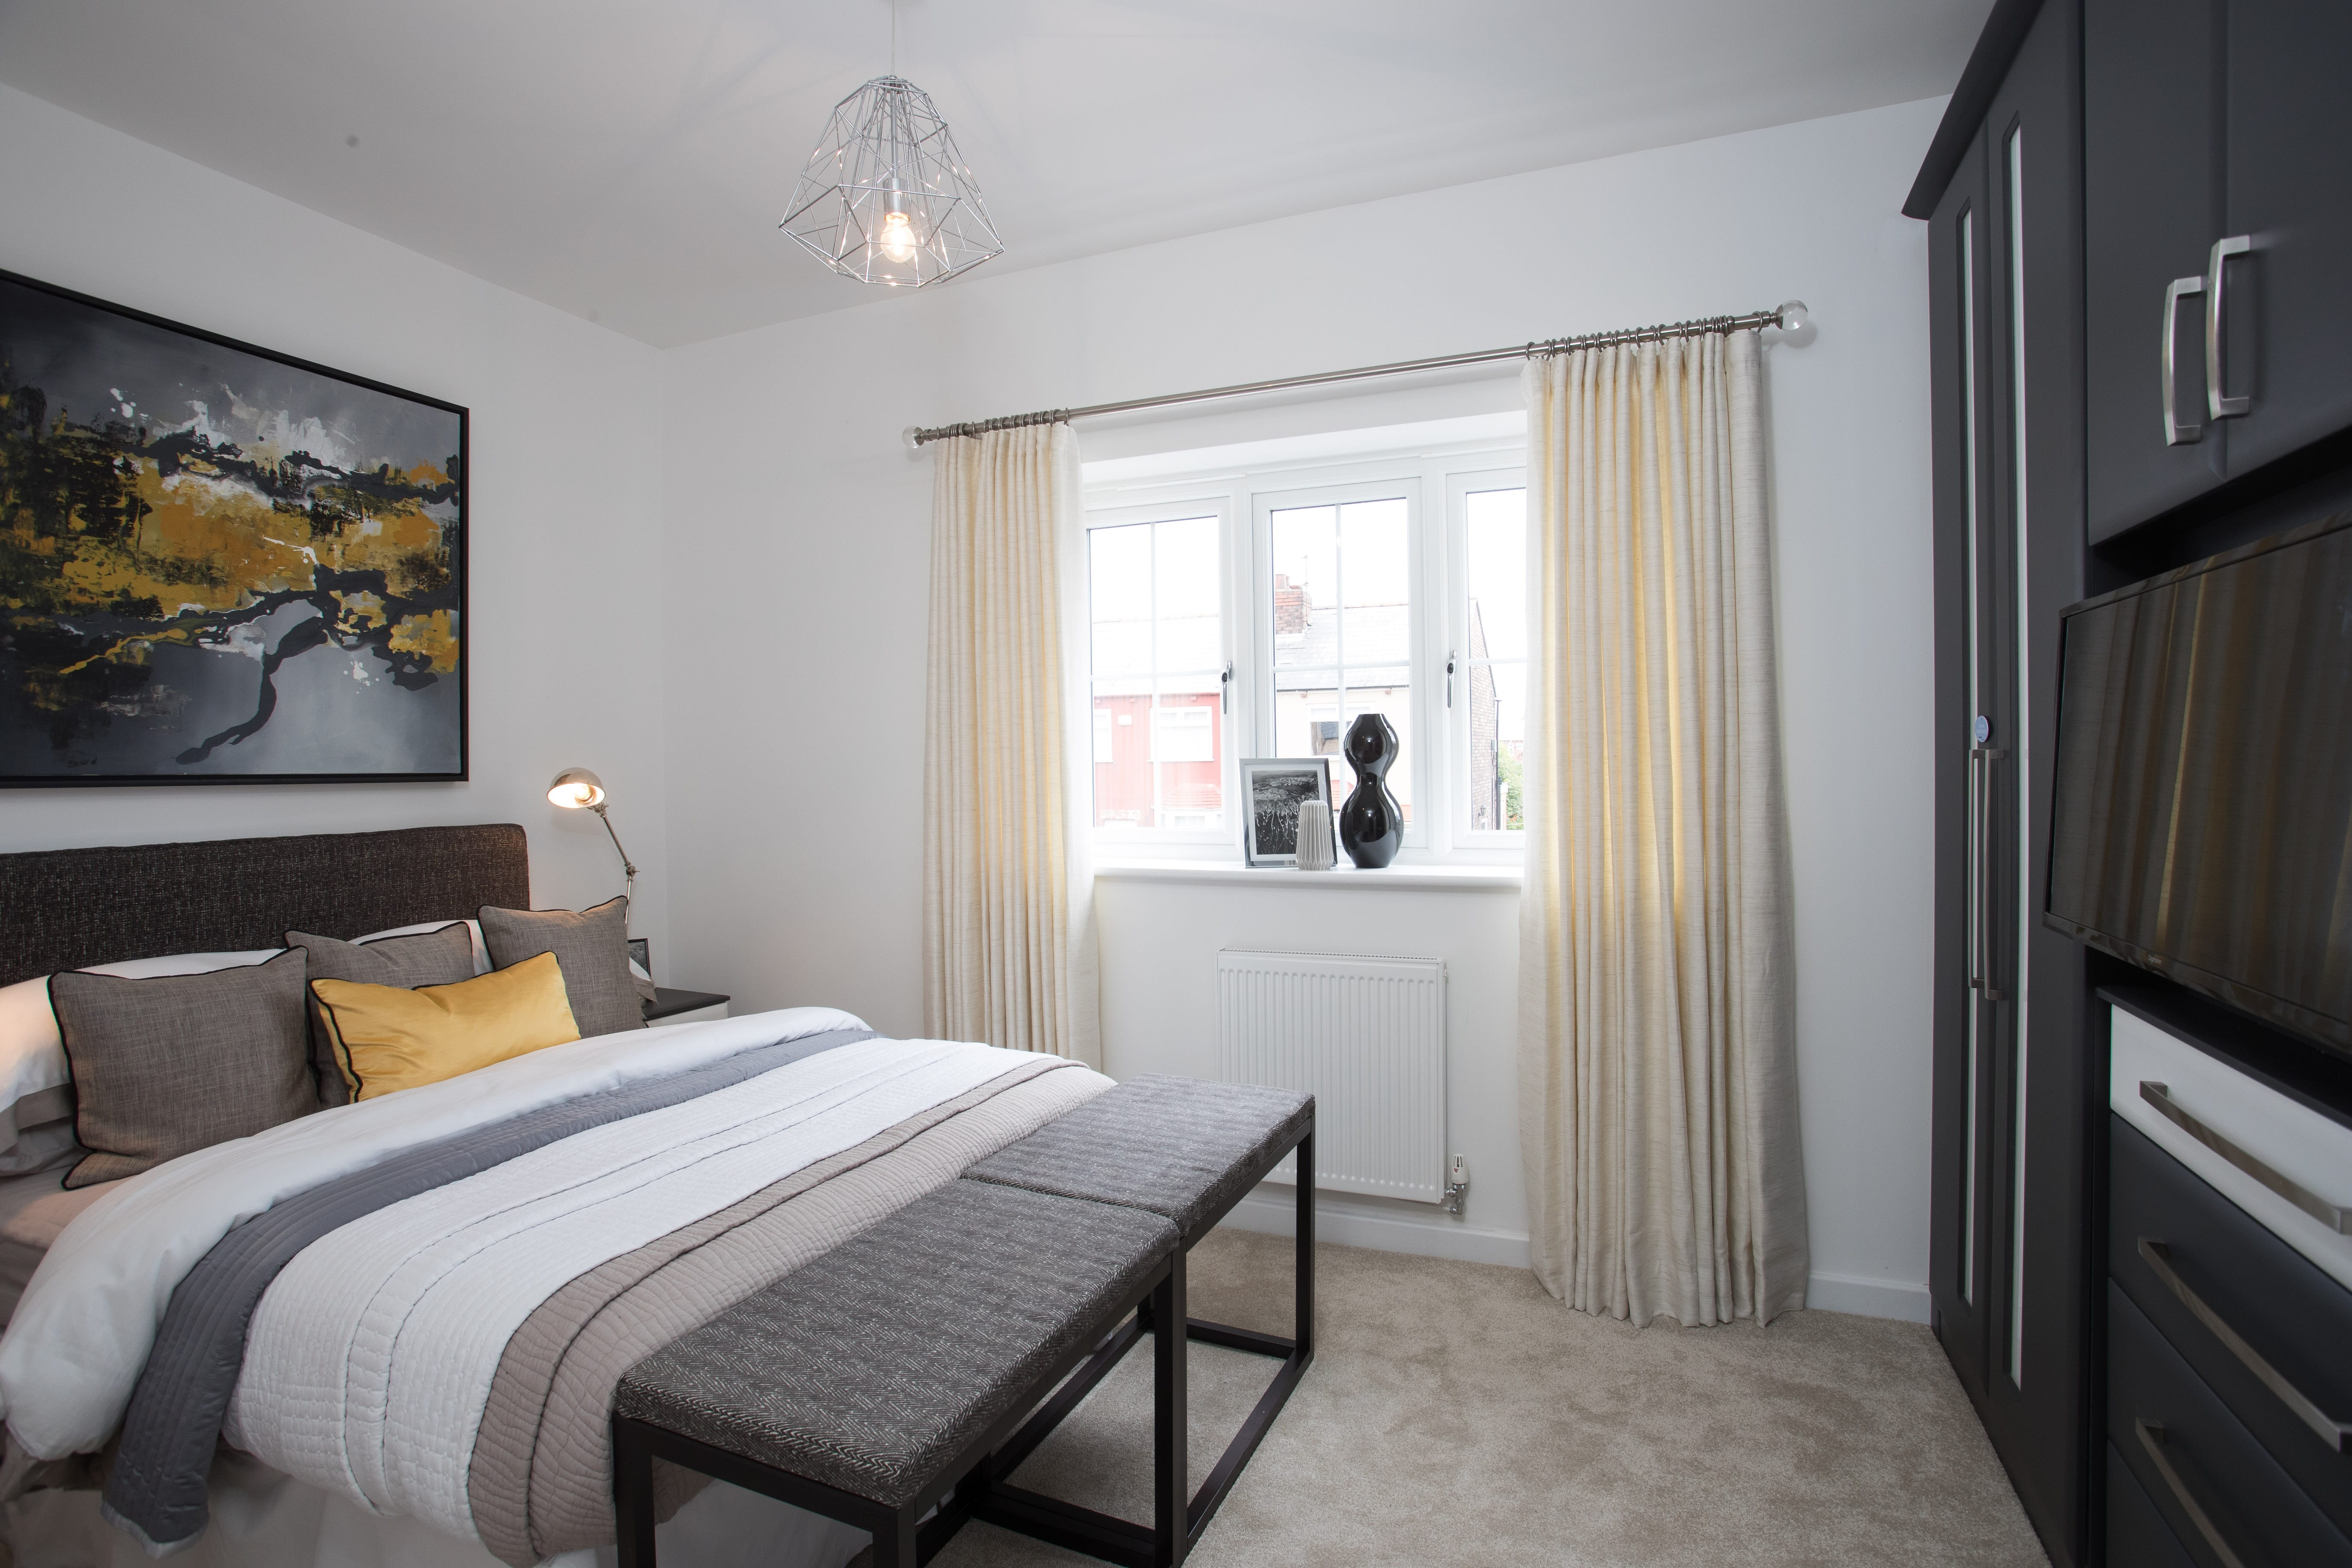 Show Home Bedroom Interiors. For Details Of How To Replicate This ...